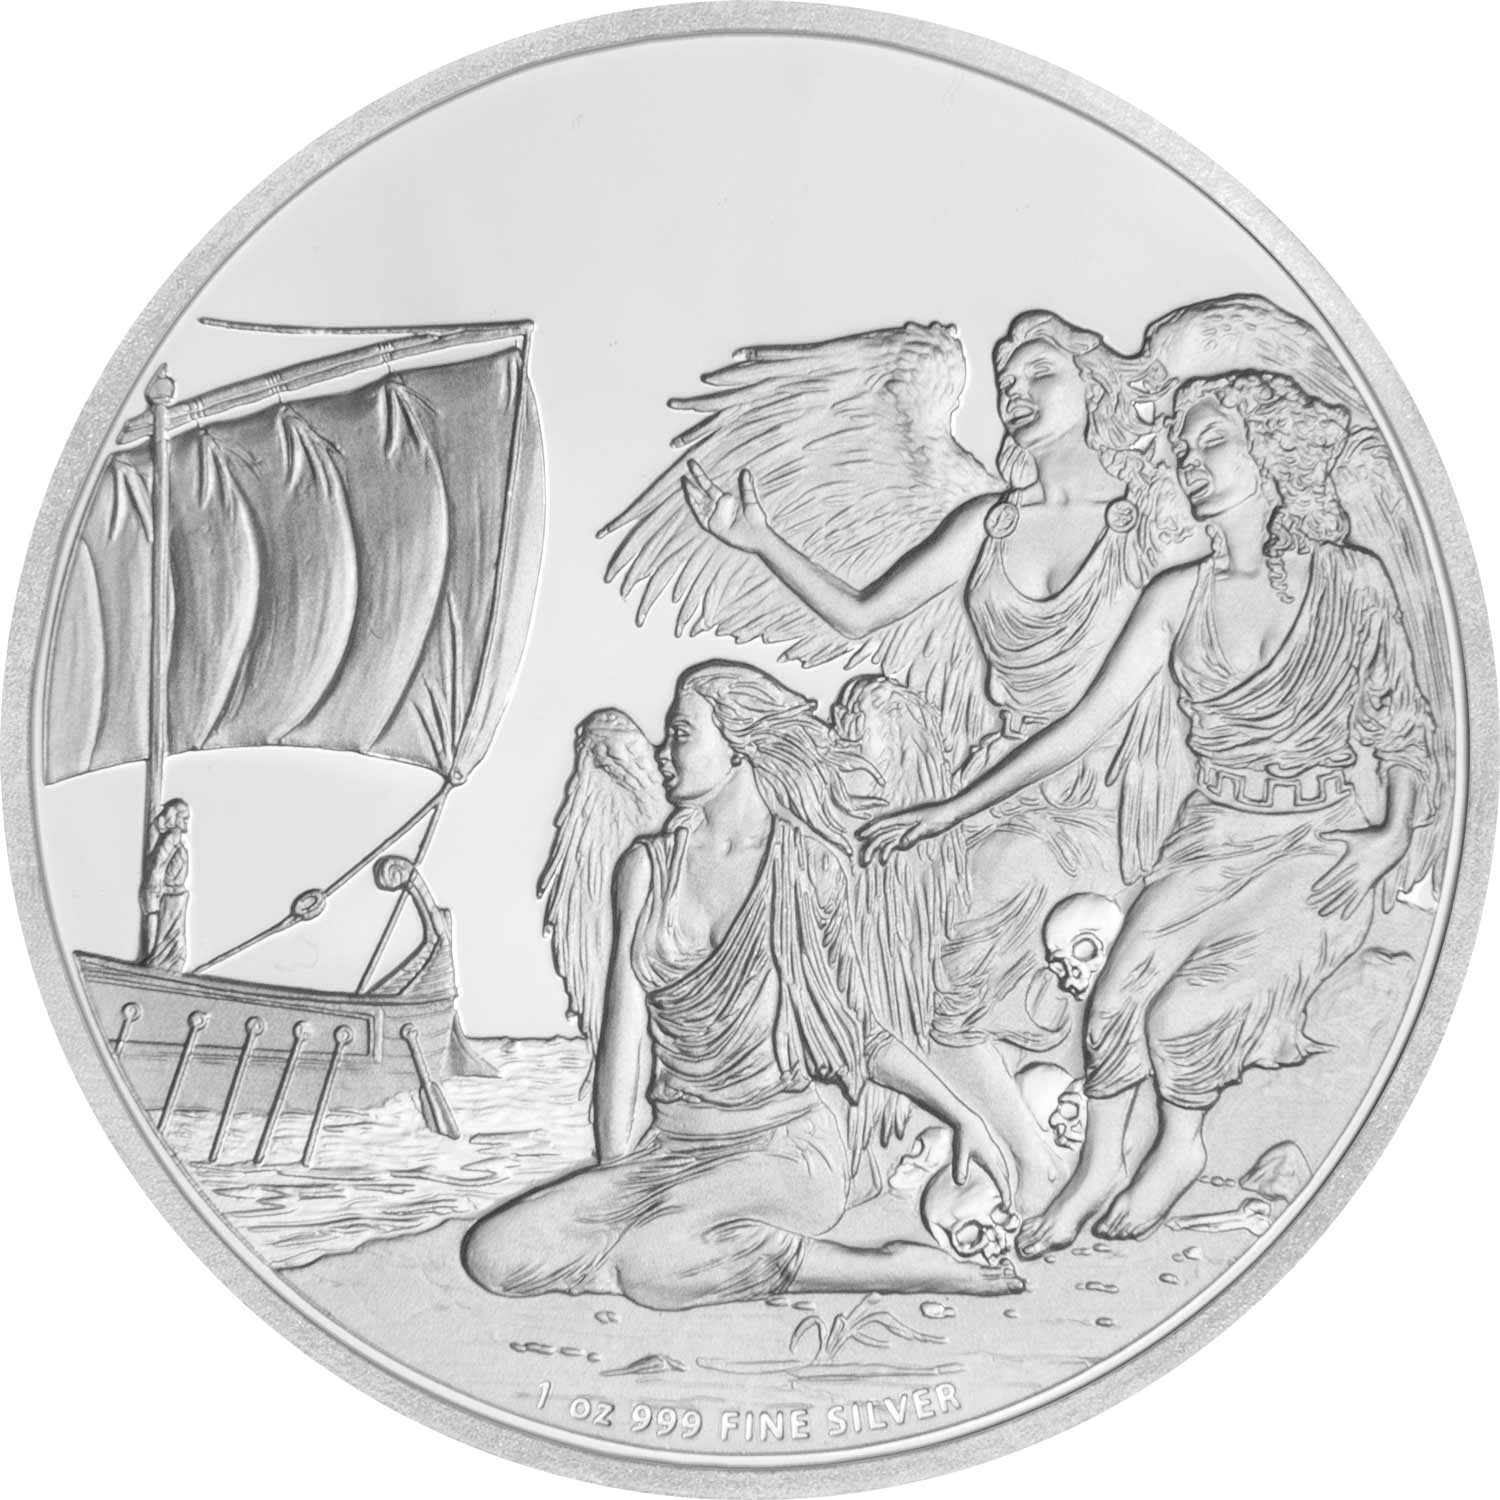 Fantasy Themed Coin Collection Featuring Engraved Illustrations